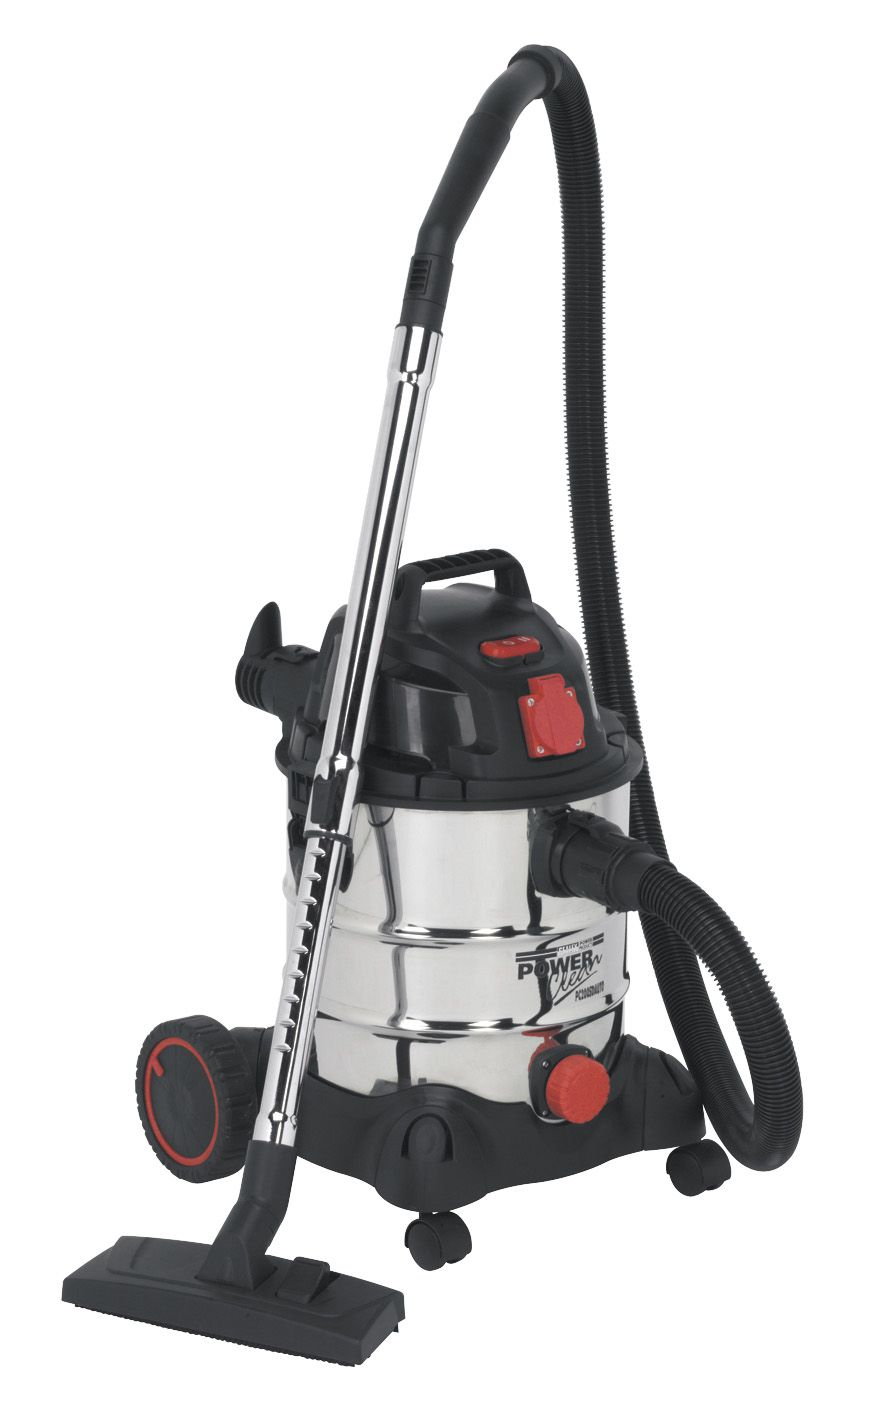 Sealey Vacuum Cleaner Industrial 20L 1400W/230V Stainless Drum Auto Start